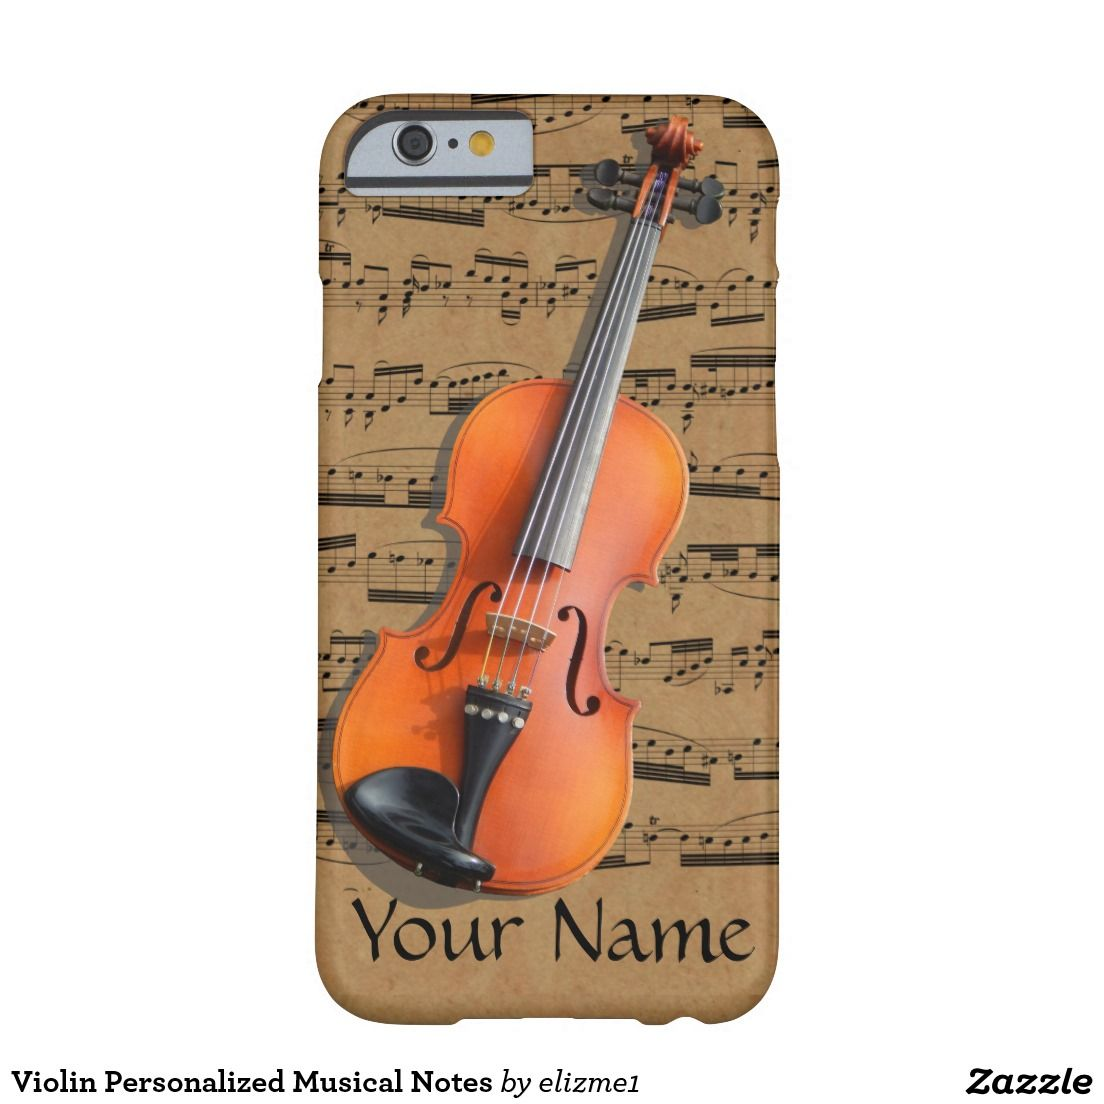 Violin Personalized Musical Notes Barely There iPhone 6 Case A custom phone case ideal for the violinist or the music lover, it presents a beautiful photograph of a violin on a light brown printed background with musical notes that give ir a vintage sheet music look. A template area is included for your personalized name or text.